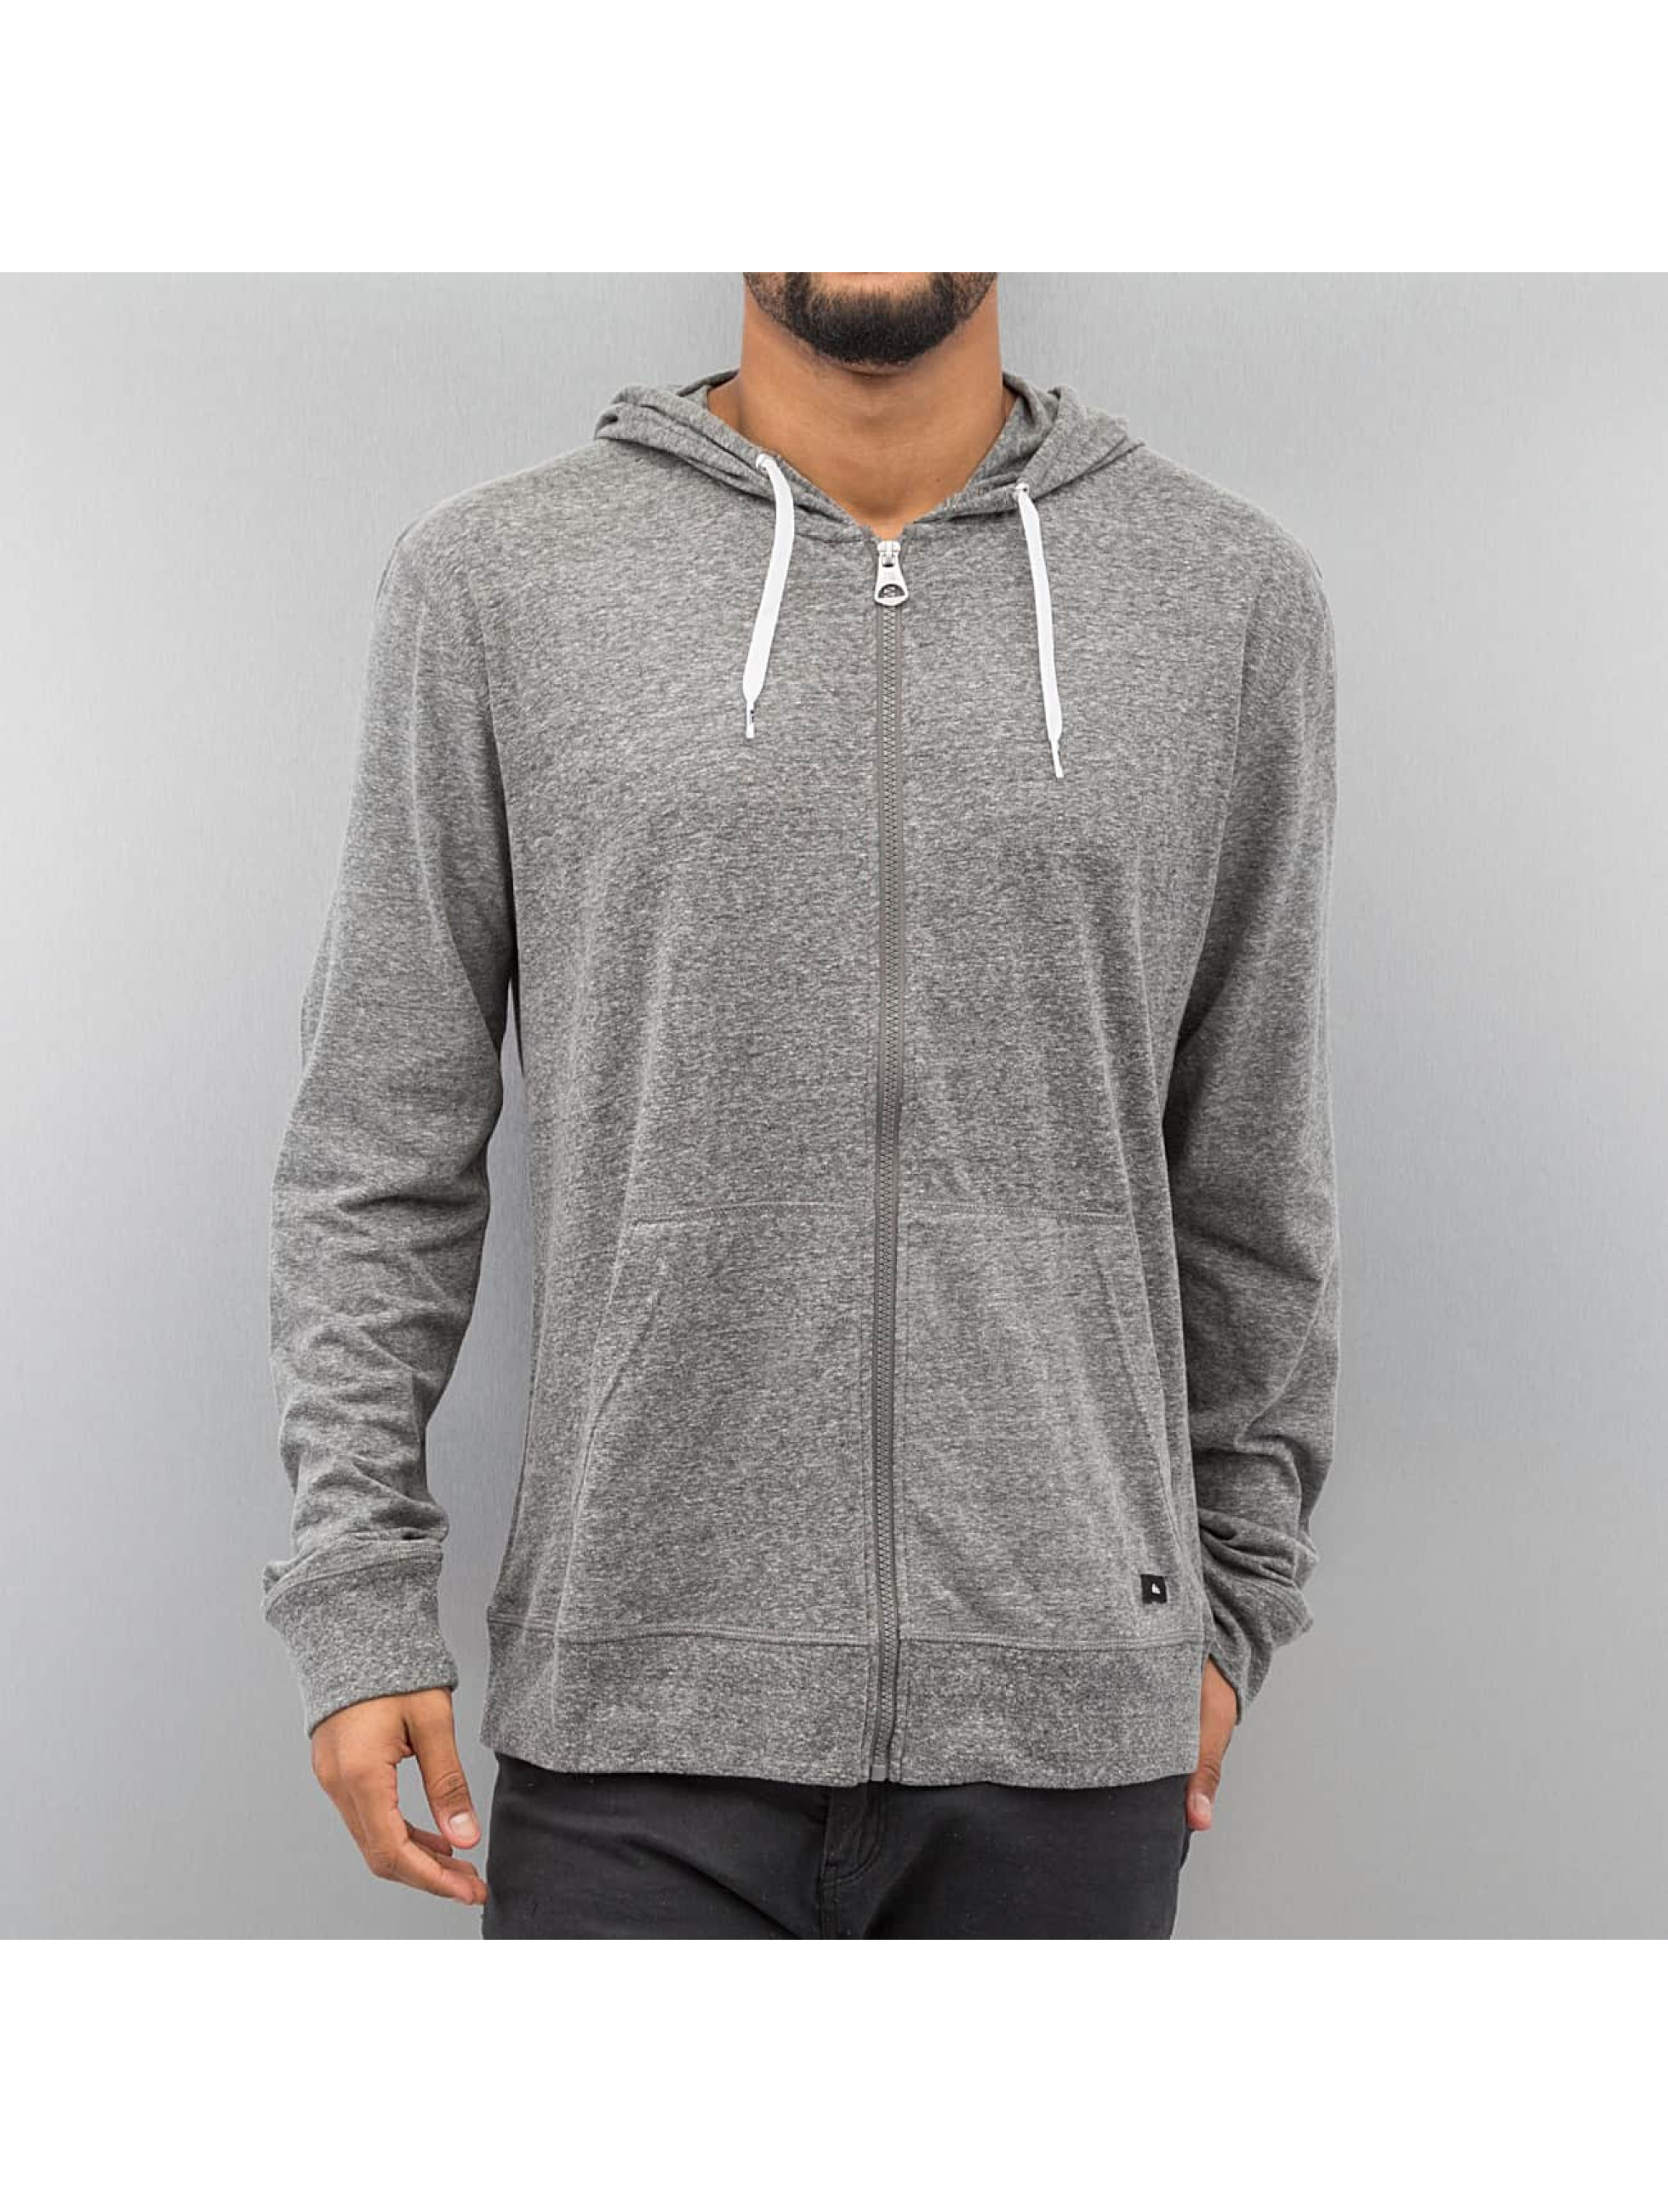 Zip Hoodie Lake Wind in grau